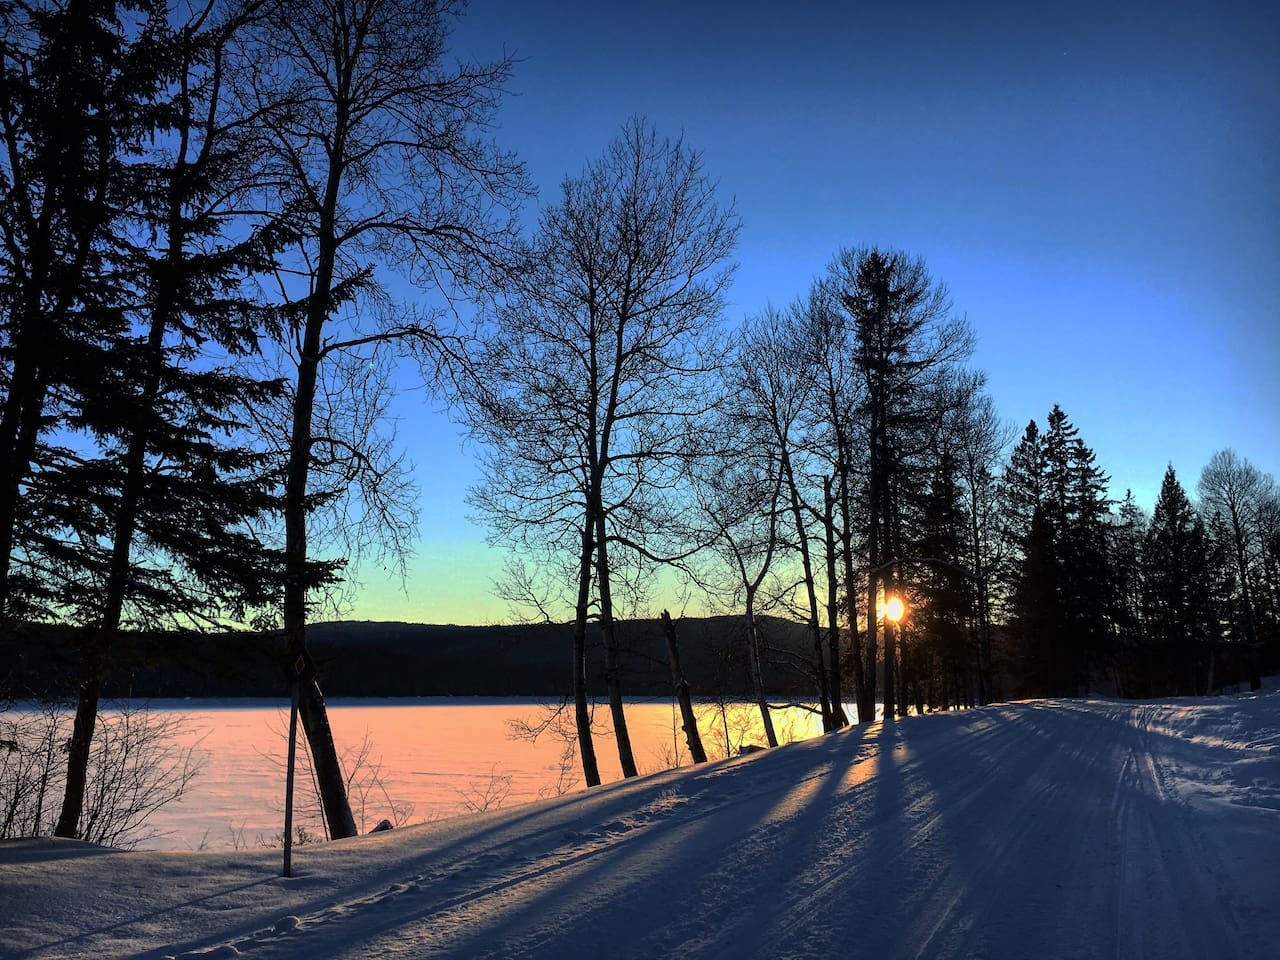 Photo of snowmobile trail at sunset by Lake Francis in Pittsburg, NH (not the view from Kelly's Cottage)